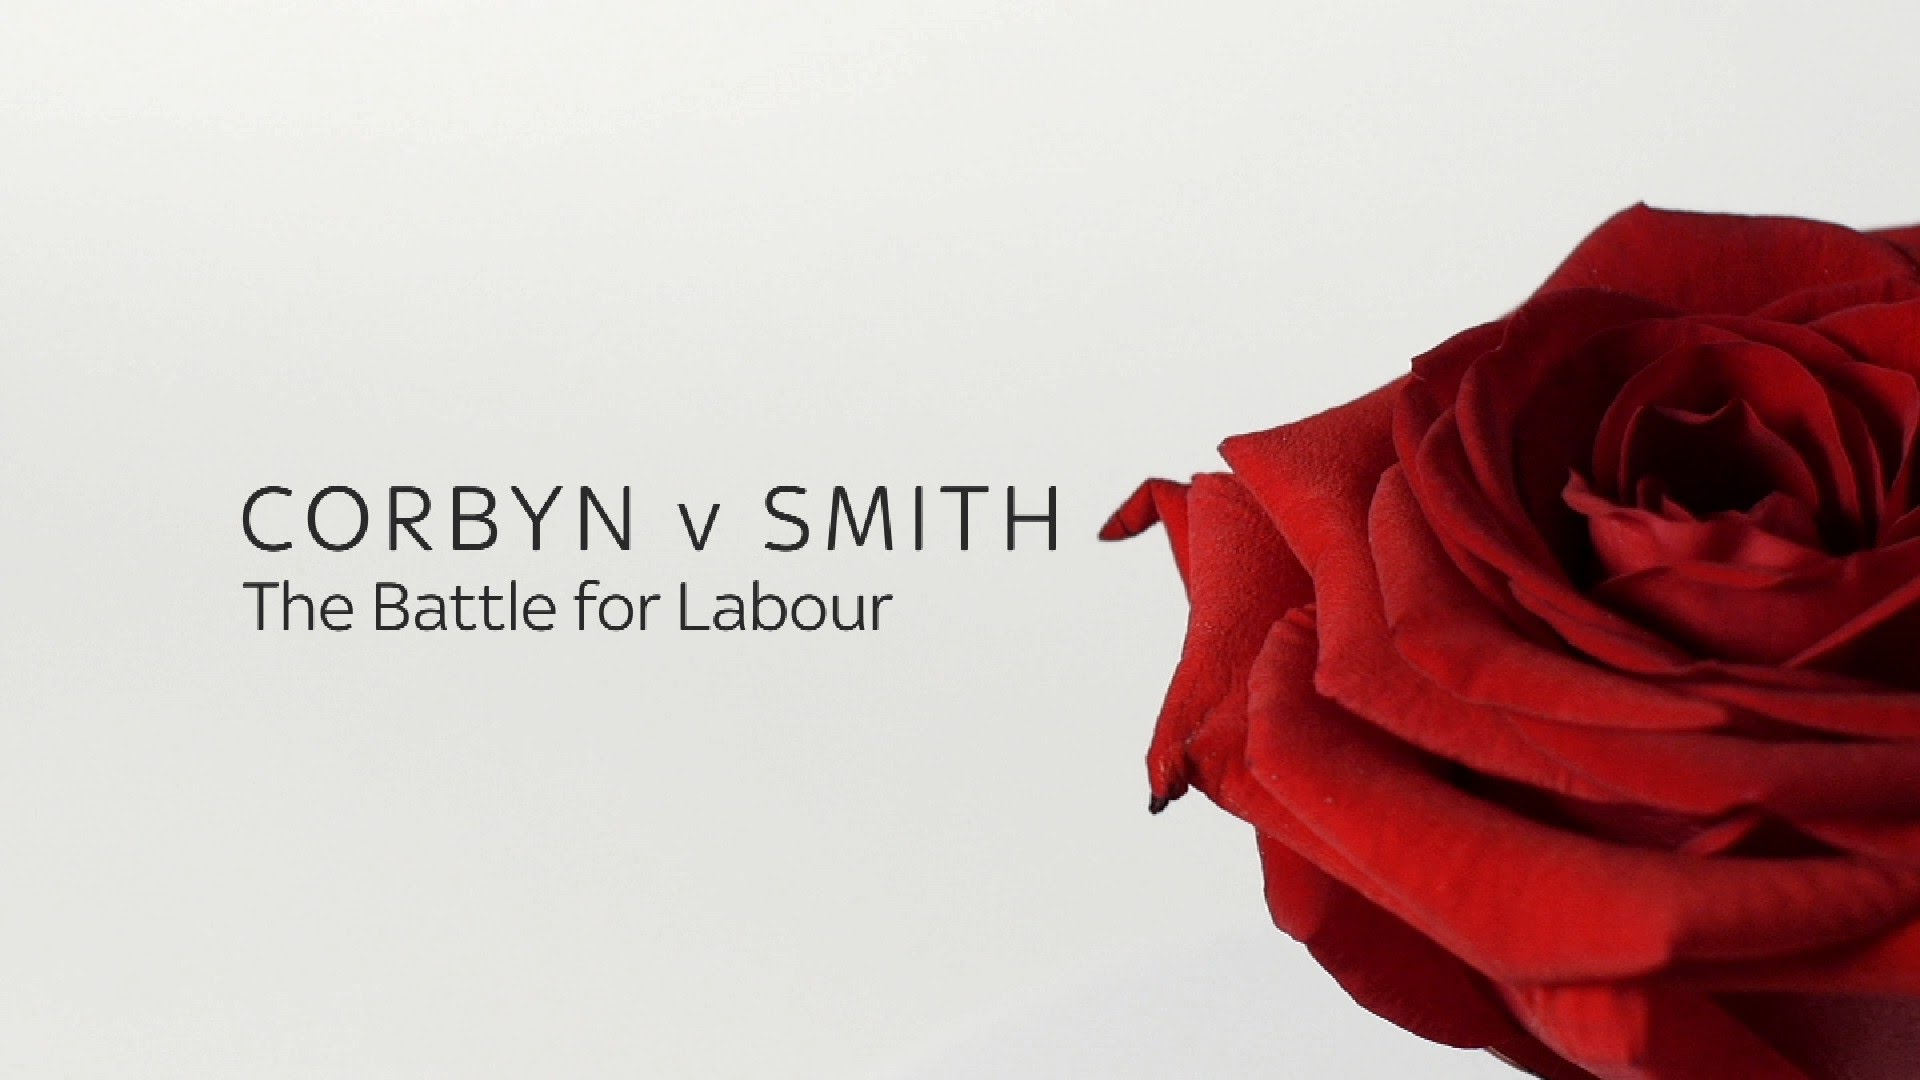 Corbyn v Smith - The Battle For Labour 8